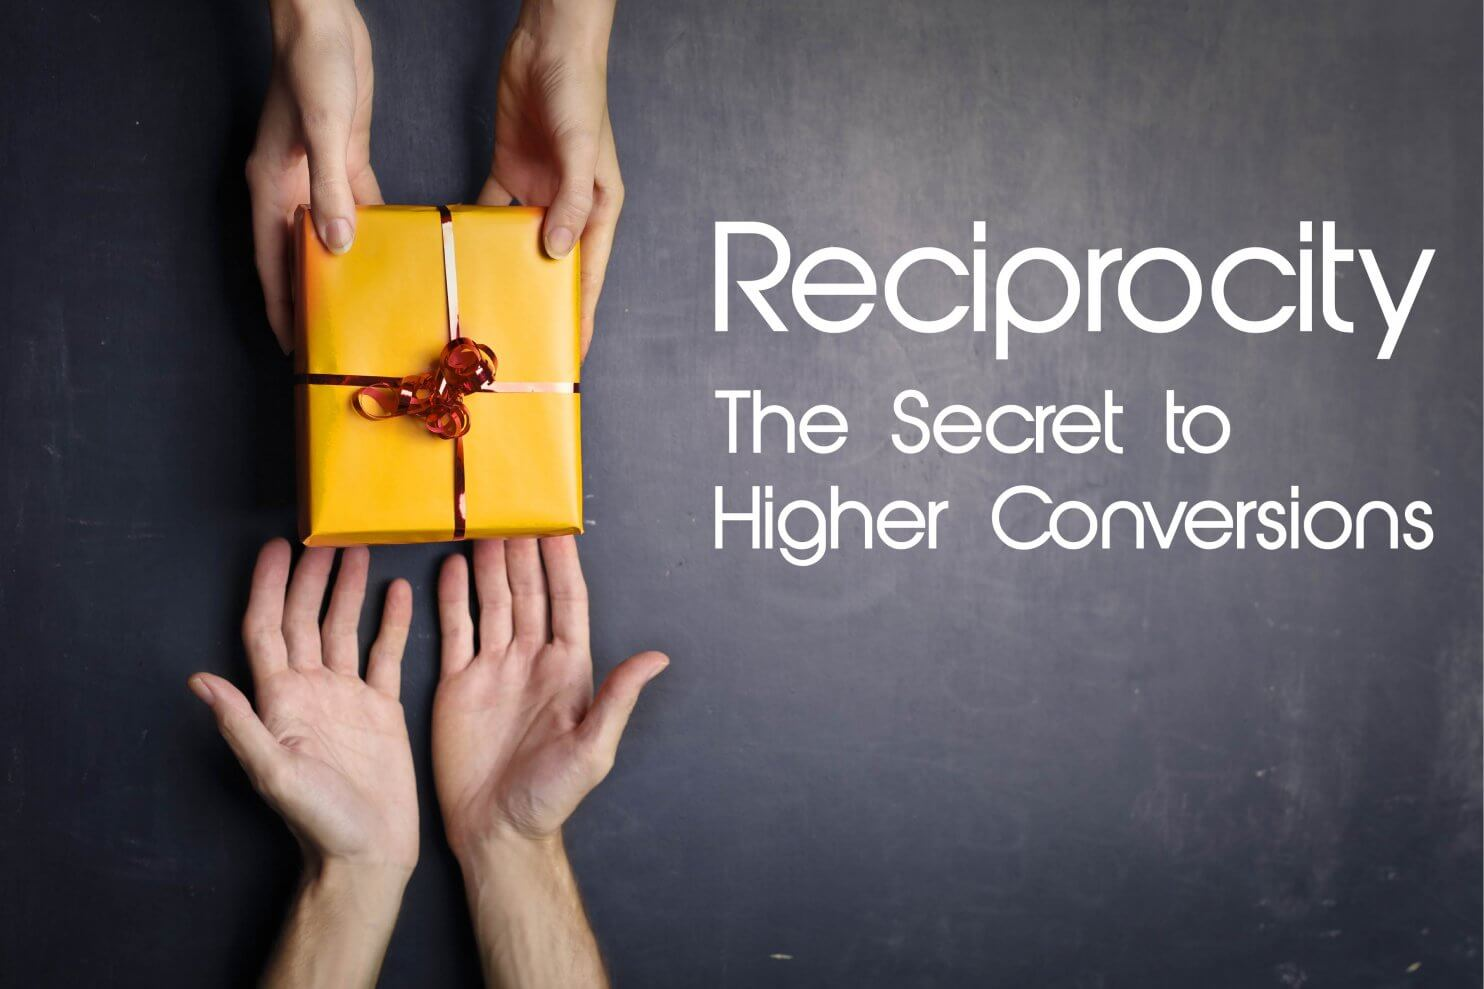 Reciprocity - The Secret to Higher Conversions